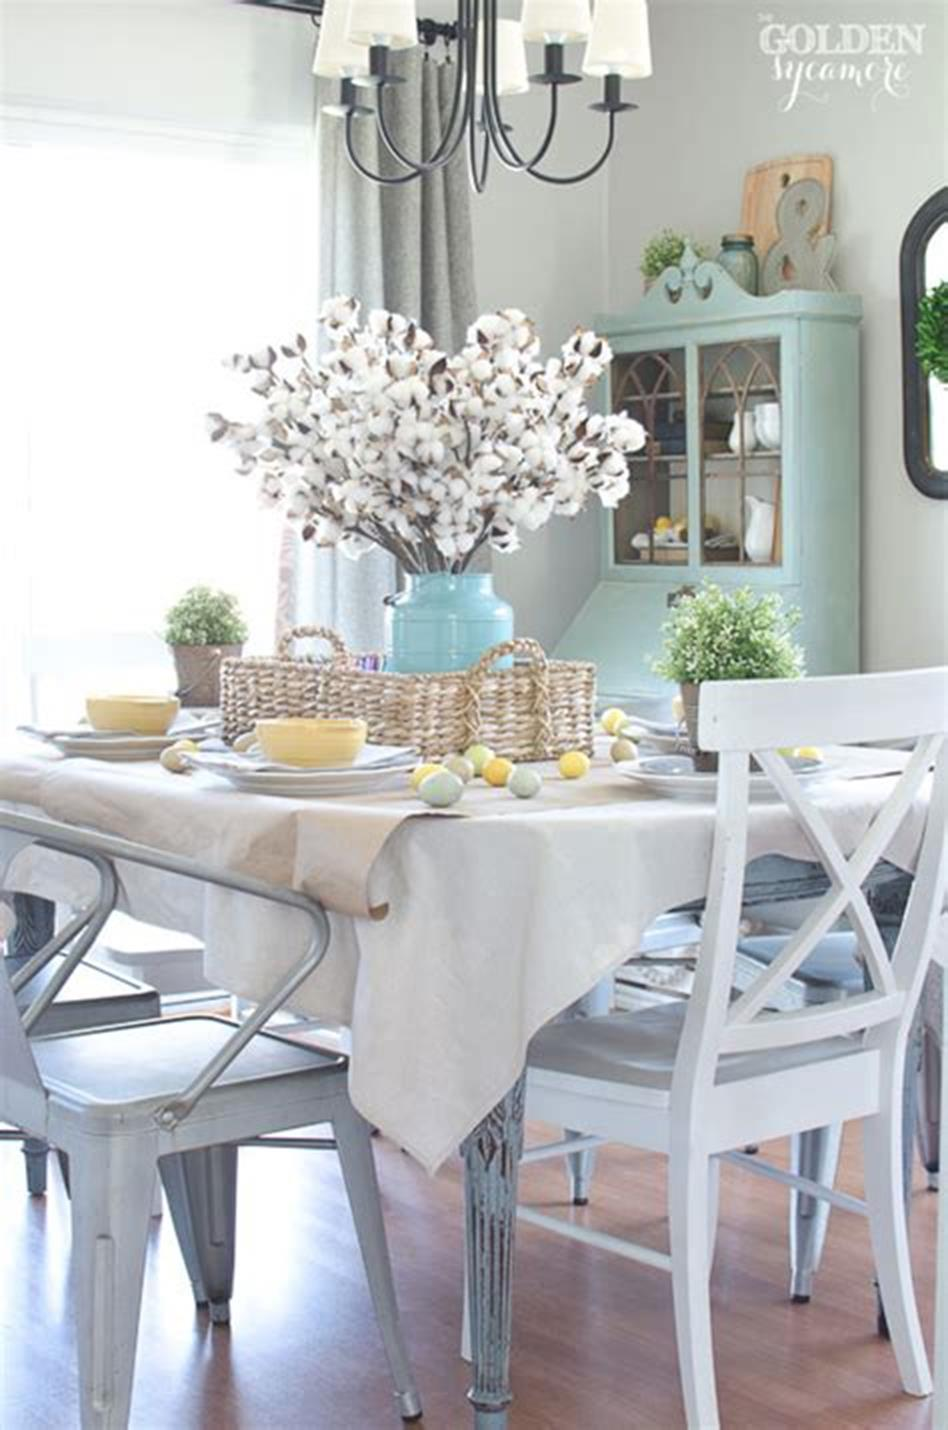 35 Stunning Spring Kitchen and Dining Room Decorating Ideas 2019 44